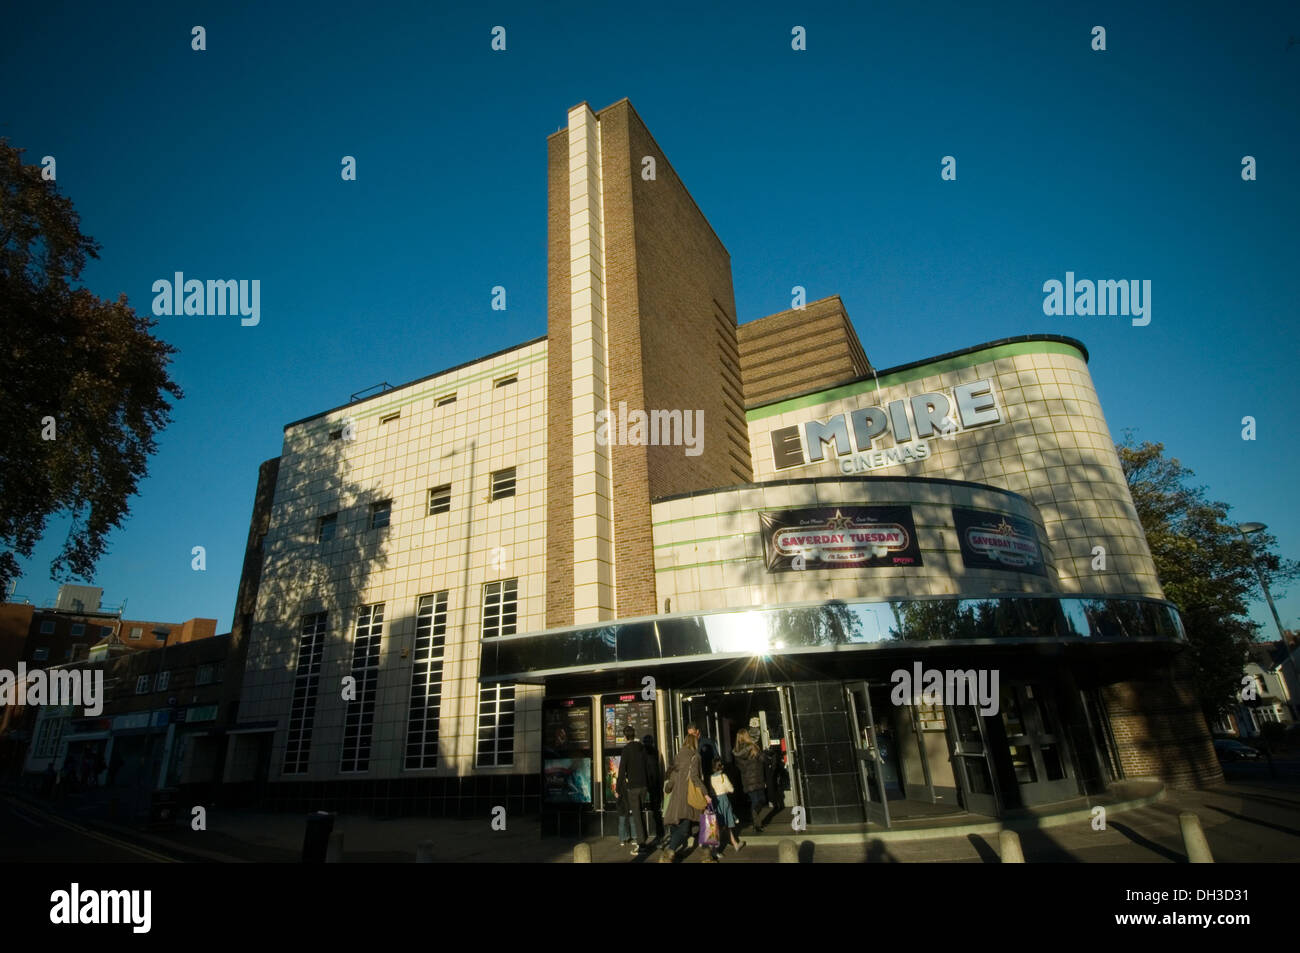 Reiches Kino Kinos Art-Deco-Kino in Sutton Coldfield uk Stockbild